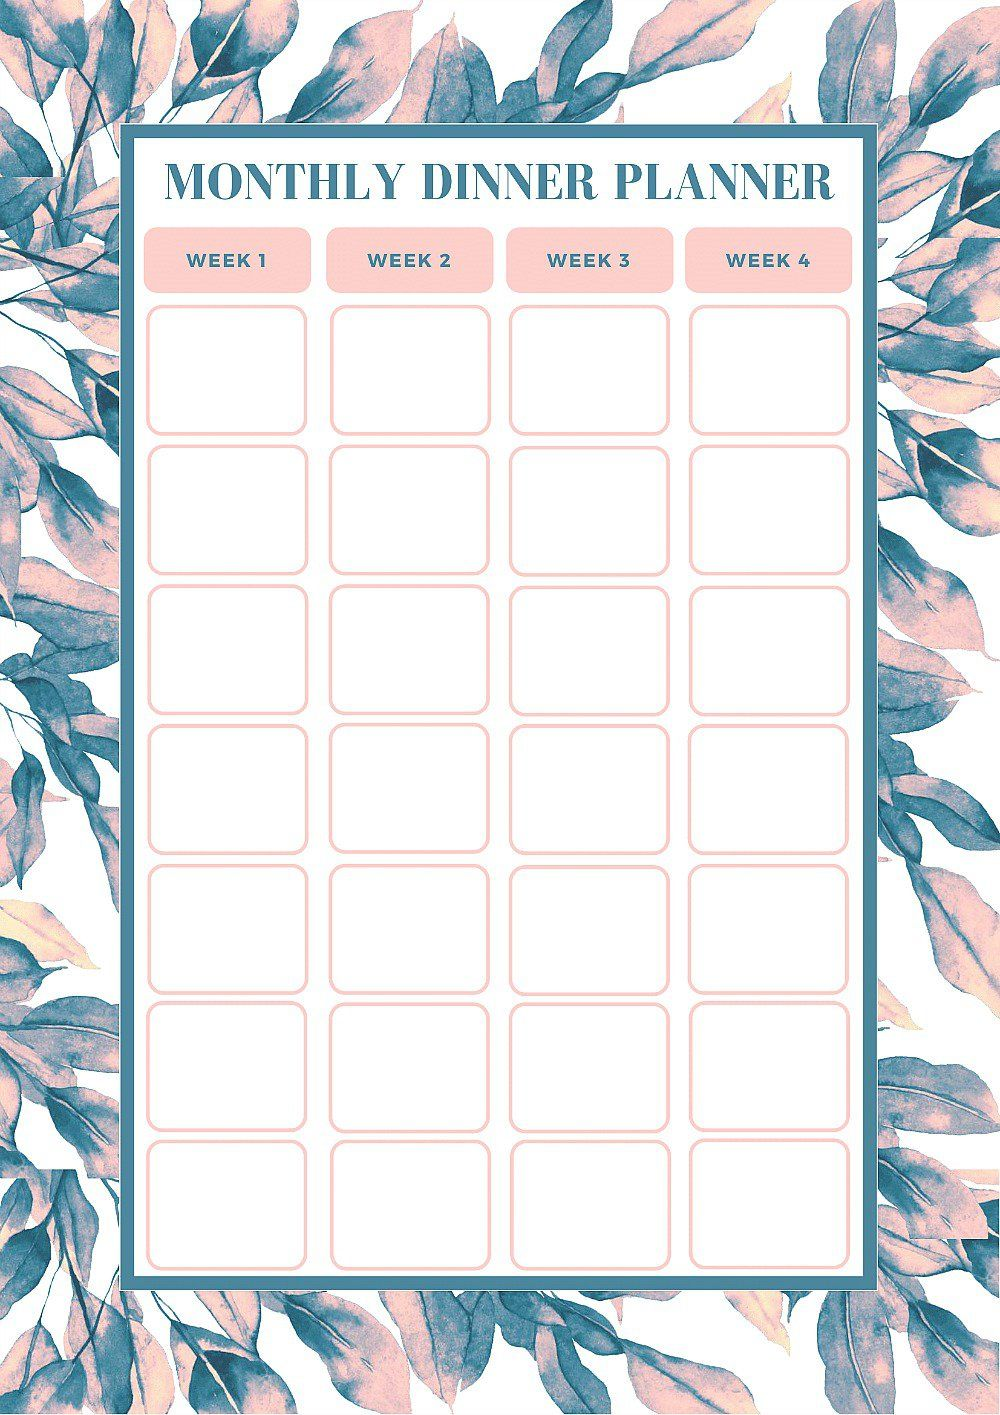 FREE Monthly Meal Planning Template | Pinterest